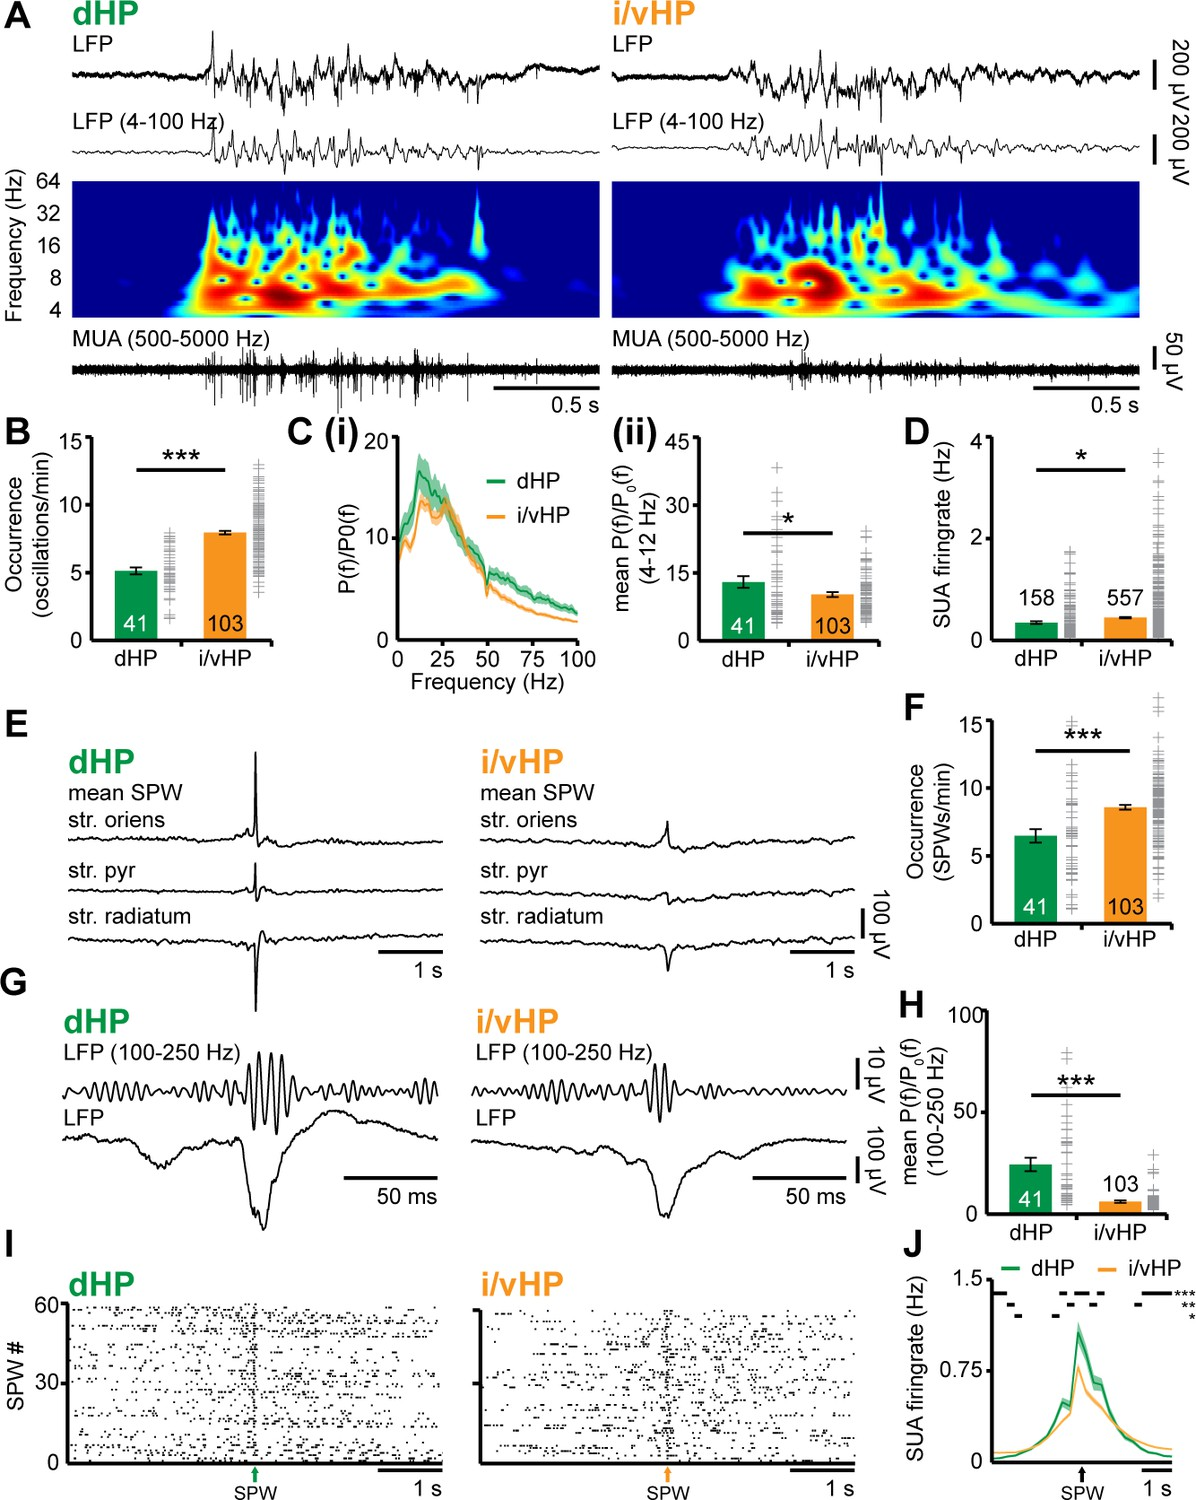 Glutamatergic Drive Along The Septo Temporal Axis Of Hippocampus Electric Blanket Wiring Diagram Besides Circuit Patterns Discontinuous Oscillatory Activity In Ca1 Area Neonatal Dhp And I Vhp Vivo